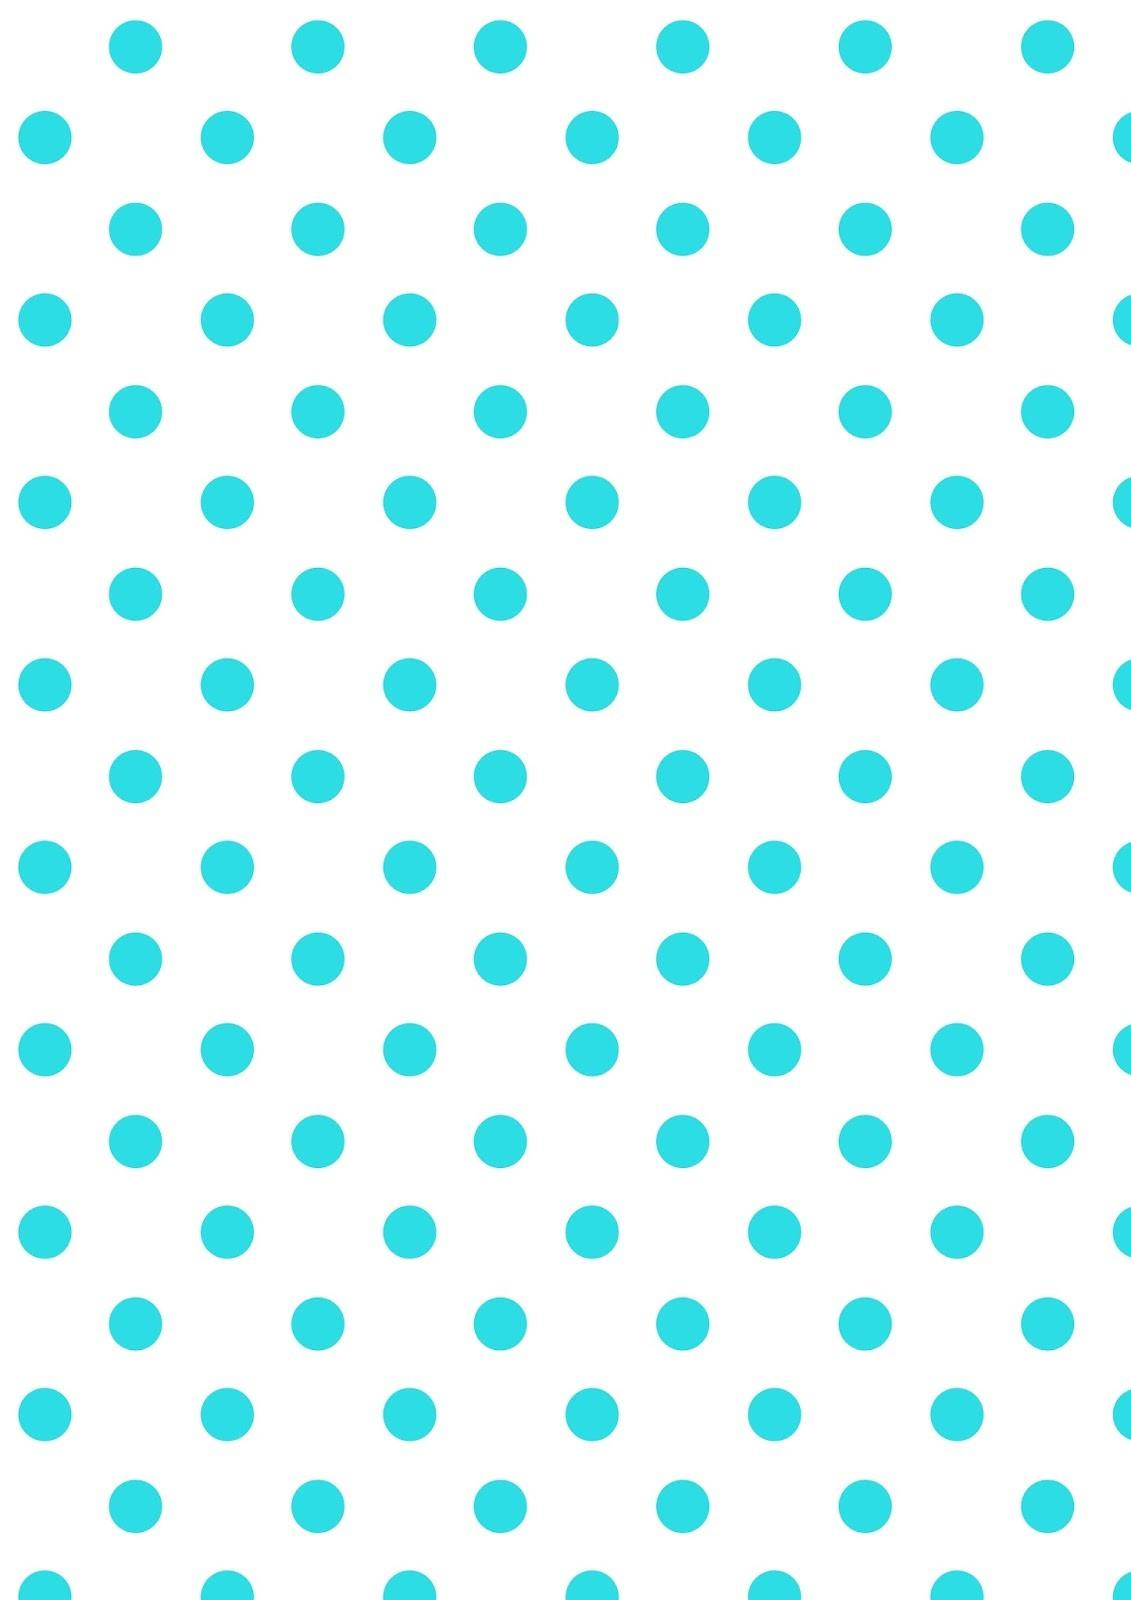 Digital Polka Dot Scrapbooking Papers Ausdruckbare